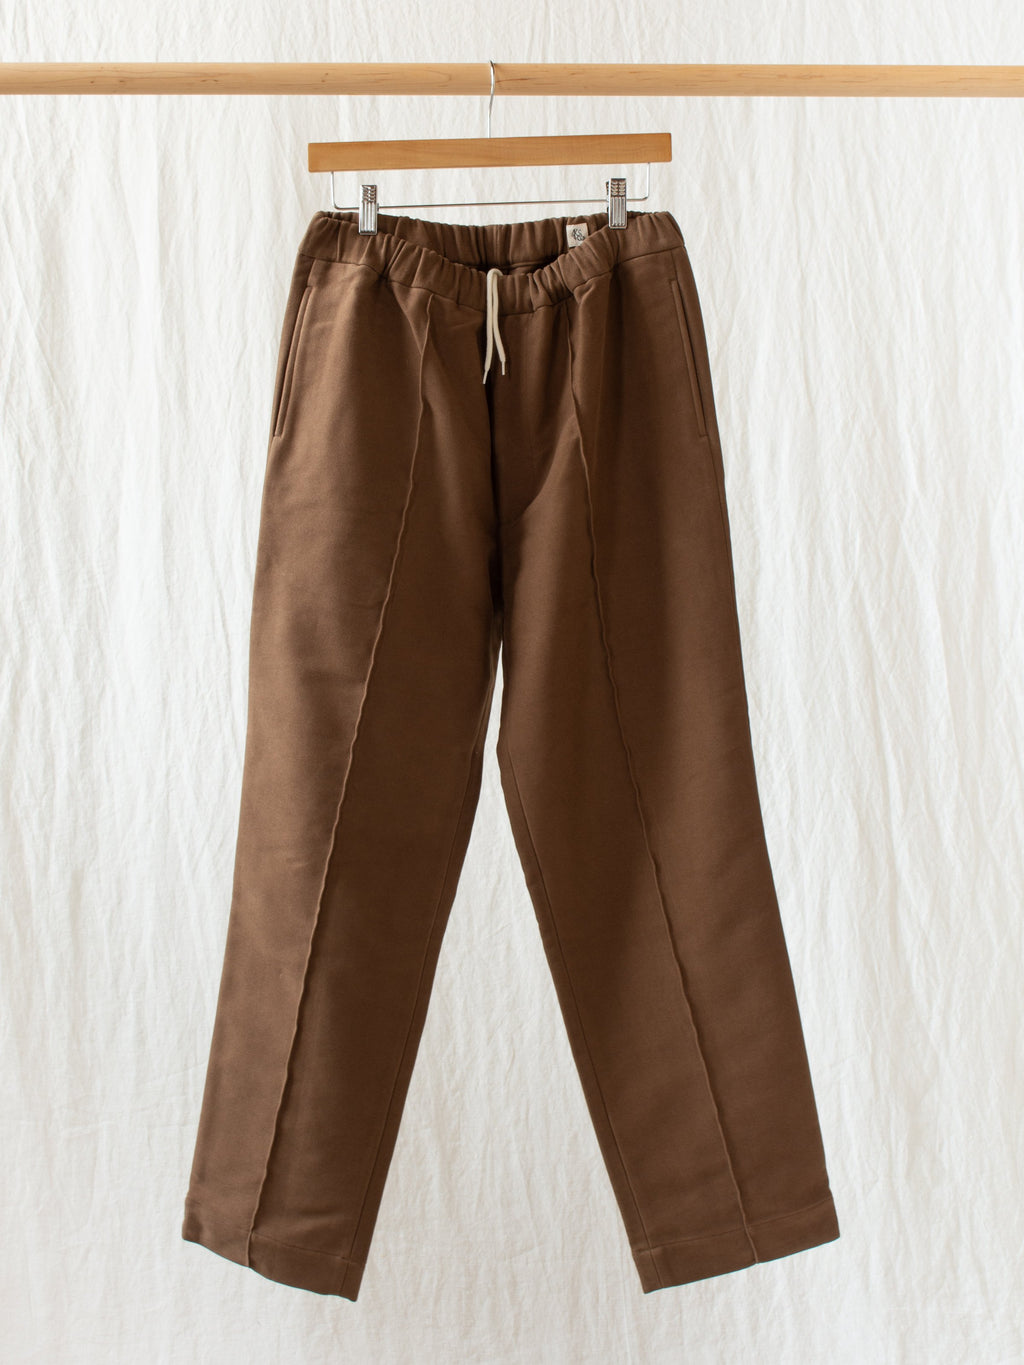 Namu Shop - Kaptain Sunshine Crease Tucked Easy Pants - Mocha